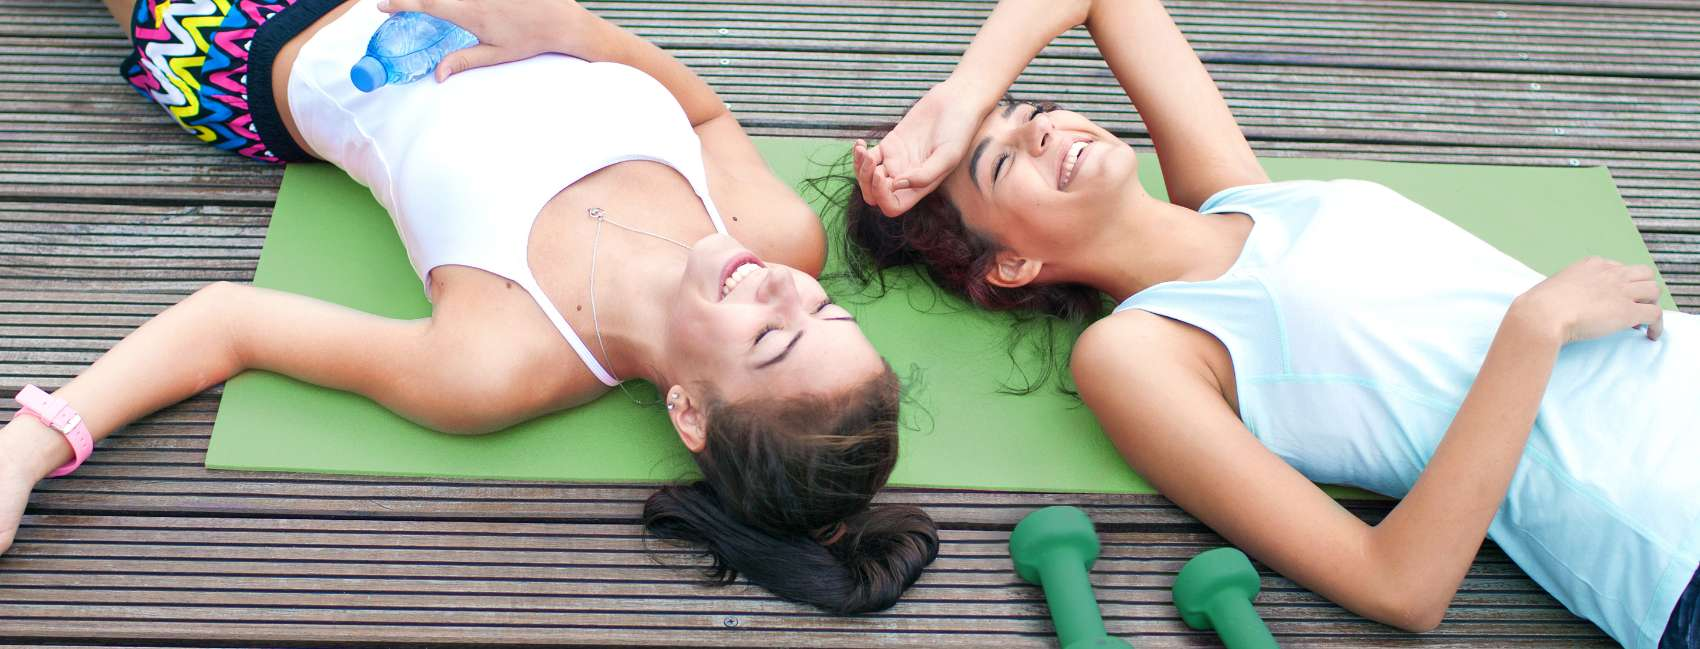 1081970-simple-your-gym-skincare-routine-two-girls-gym-banner